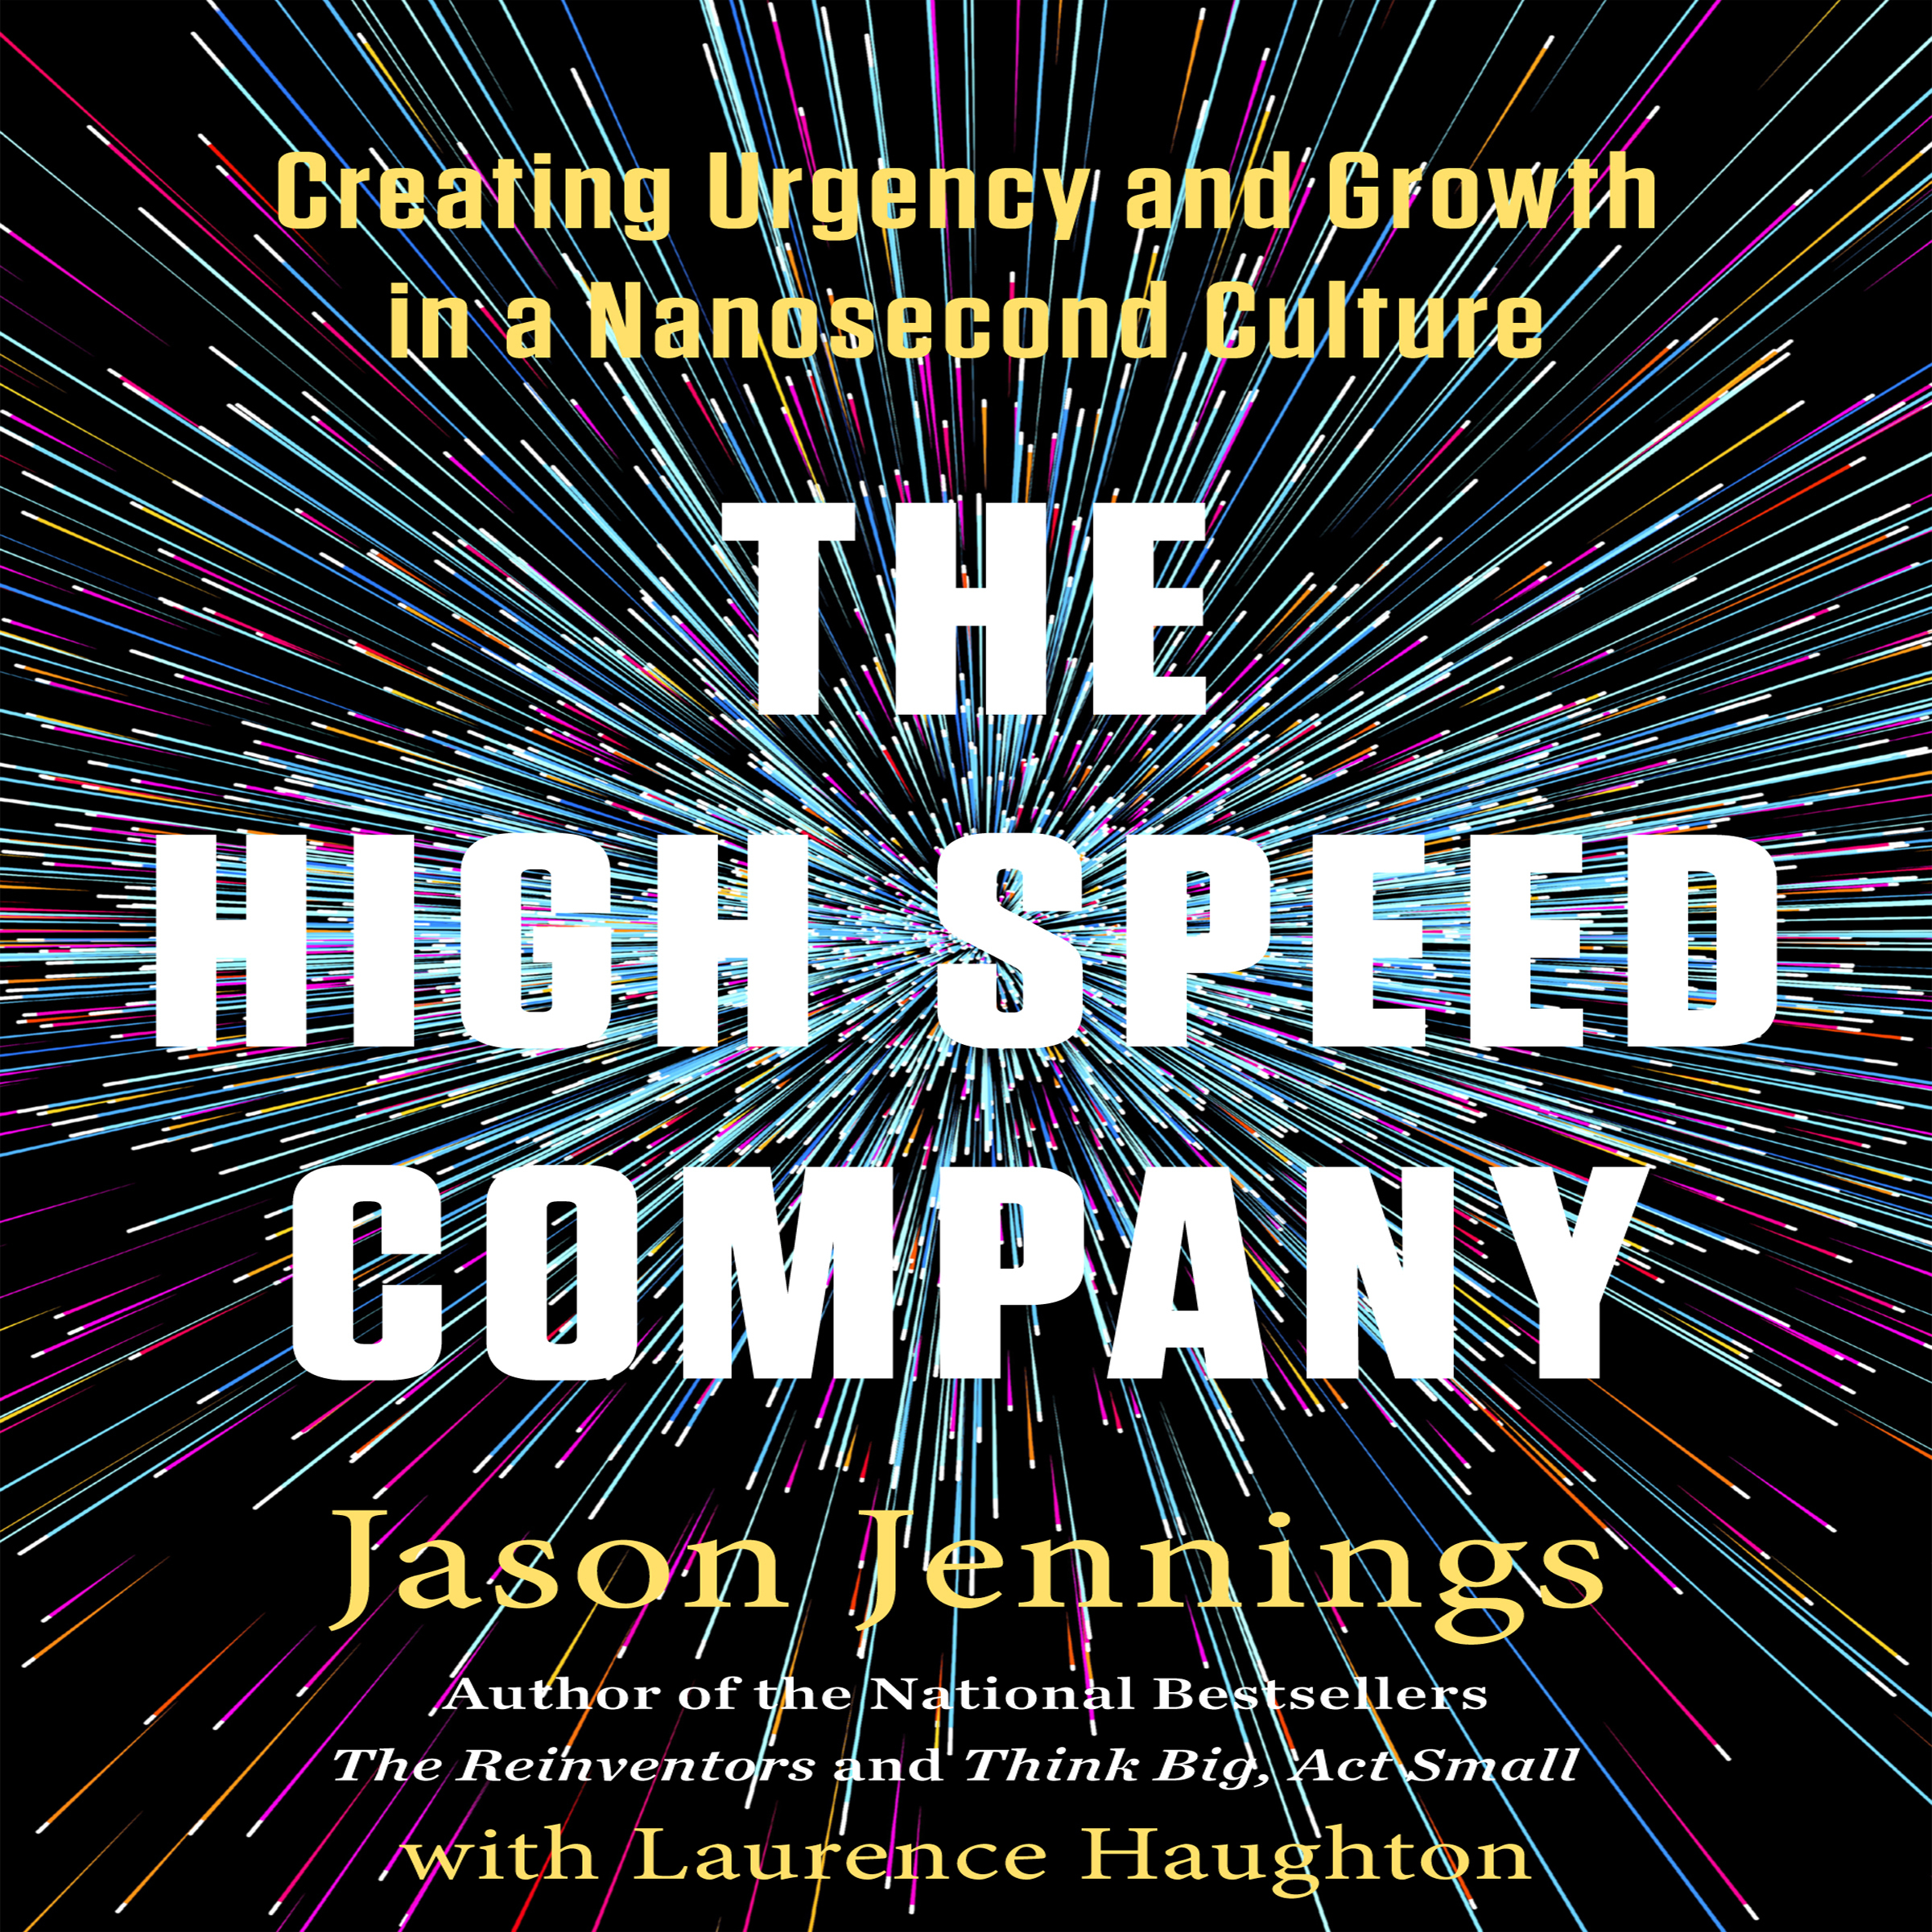 Printable The High-Speed Company: Creating Urgency and Growth in a Nanosecond Culture Audiobook Cover Art